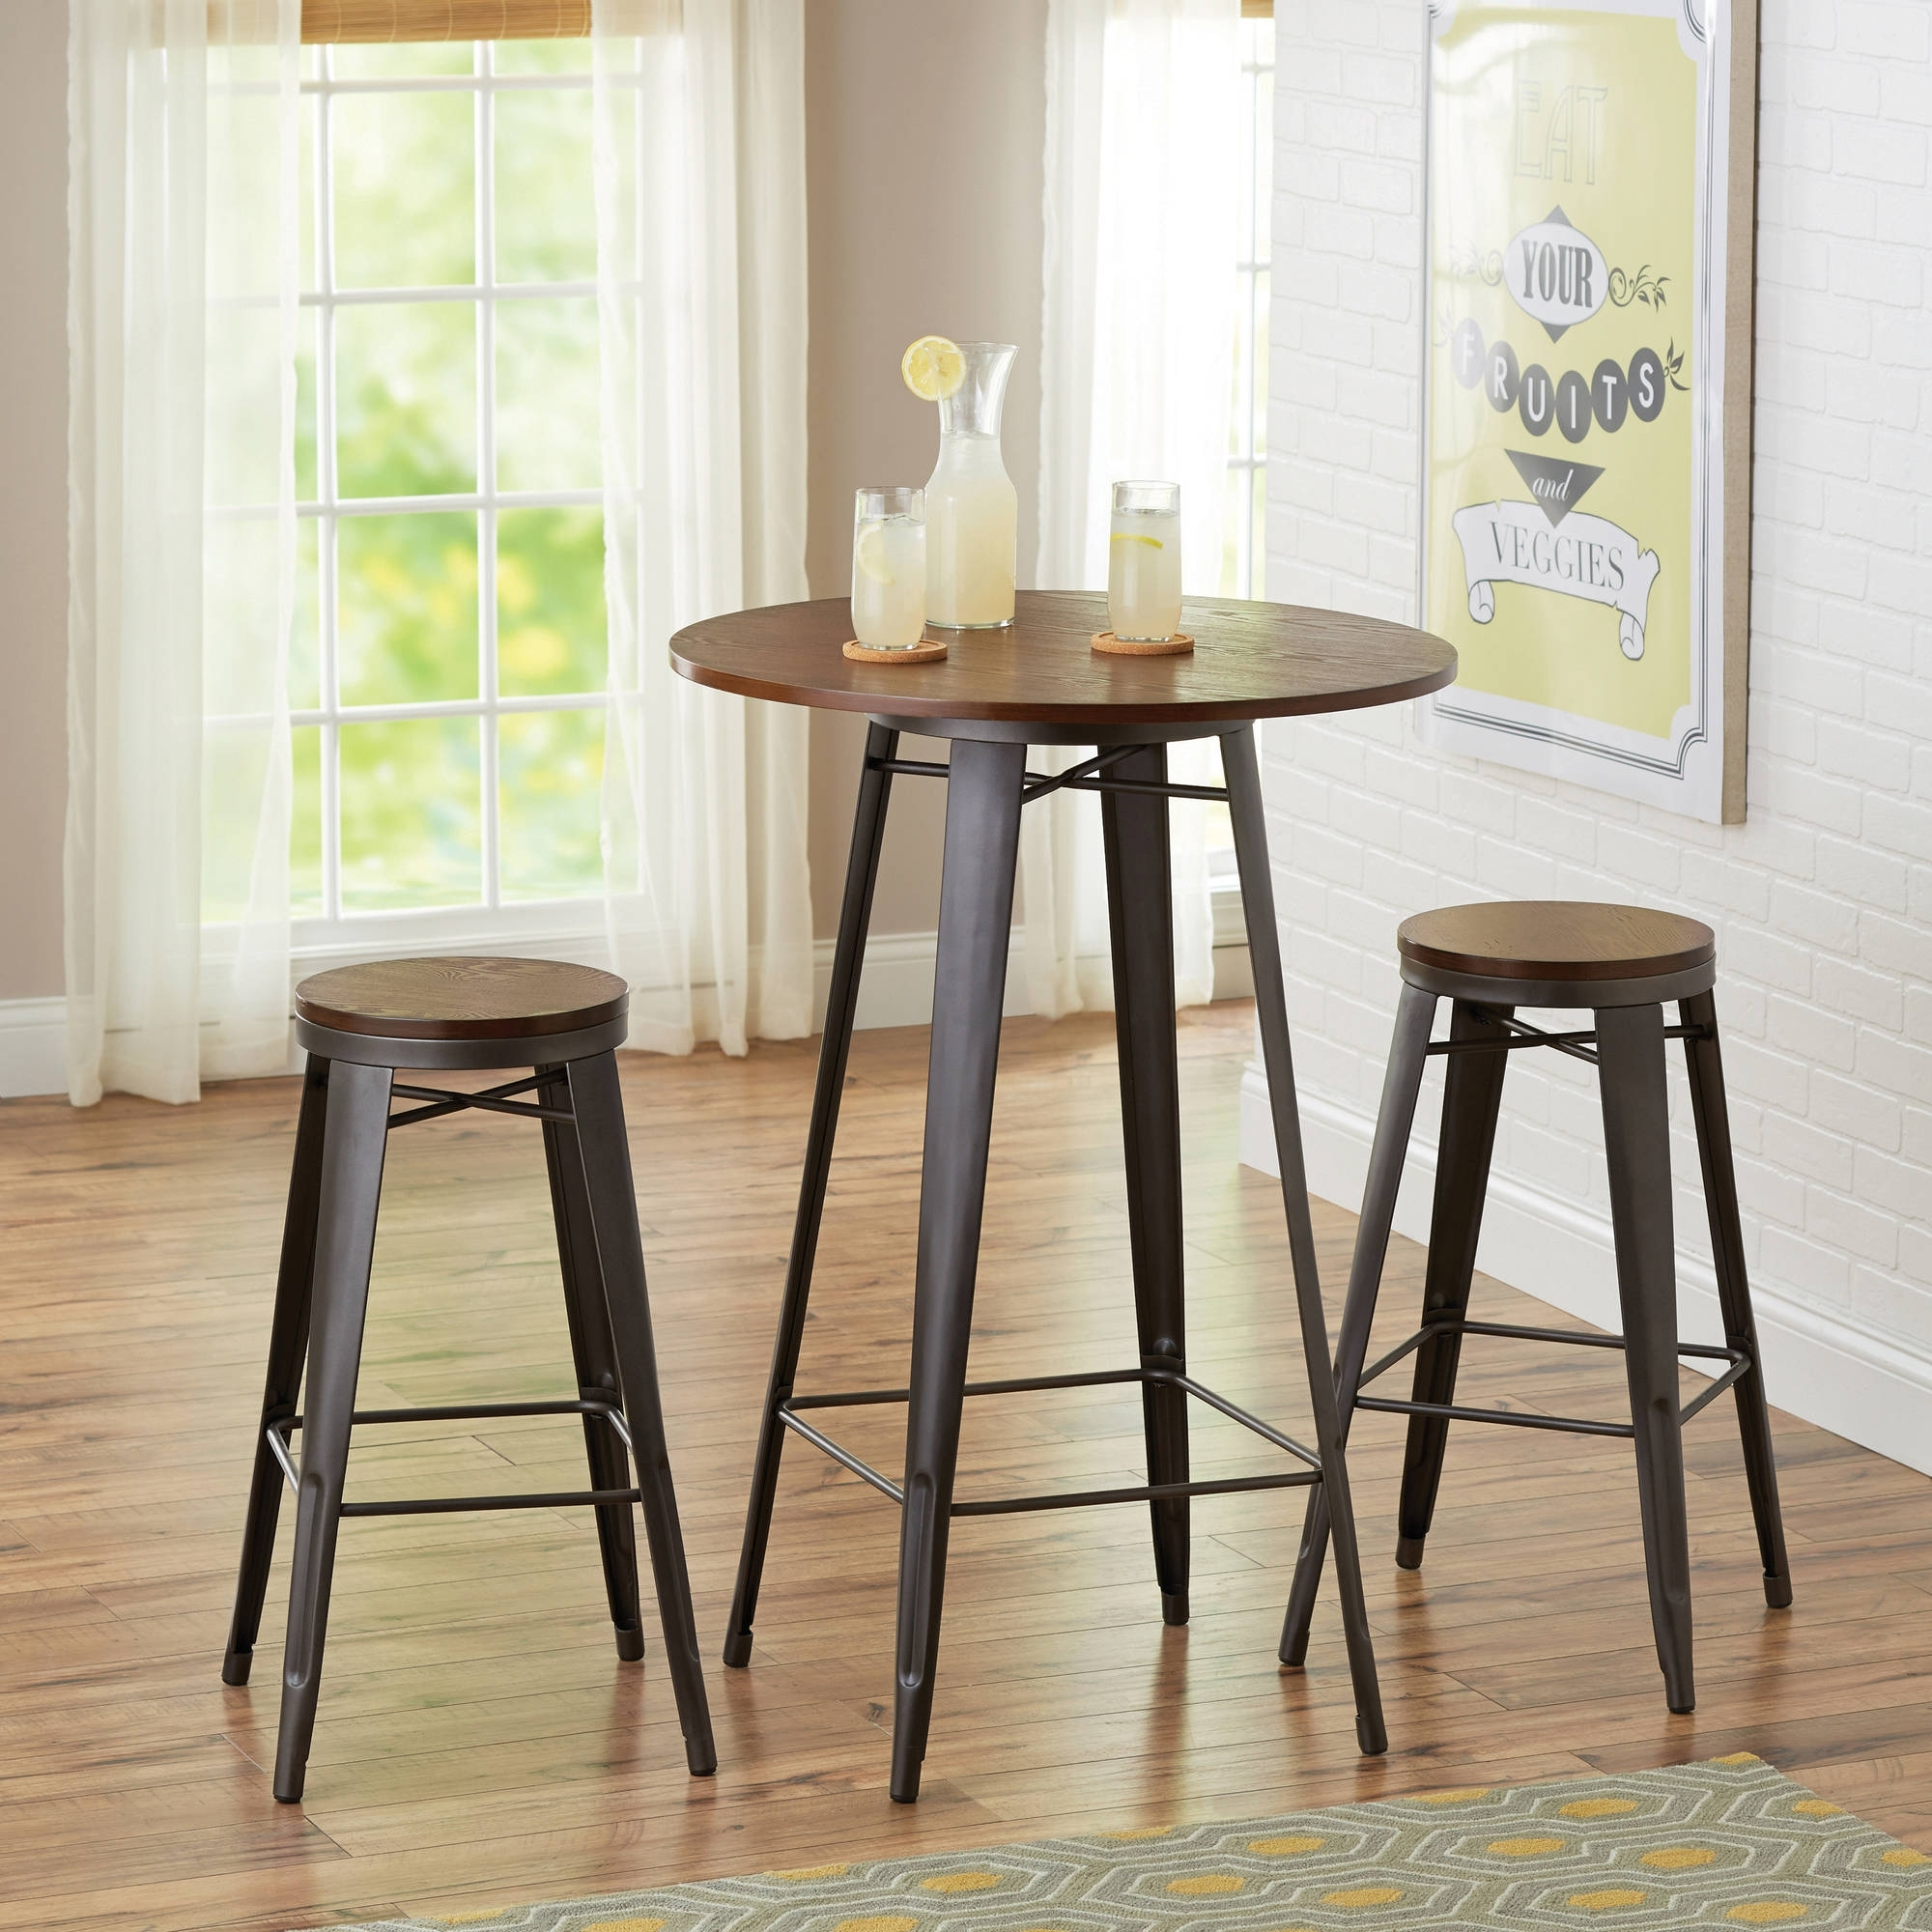 Better Homes And Gardens Harper 3 Piece Pub Set, Multiple Colors In Current Harper 5 Piece Counter Sets (Image 4 of 20)